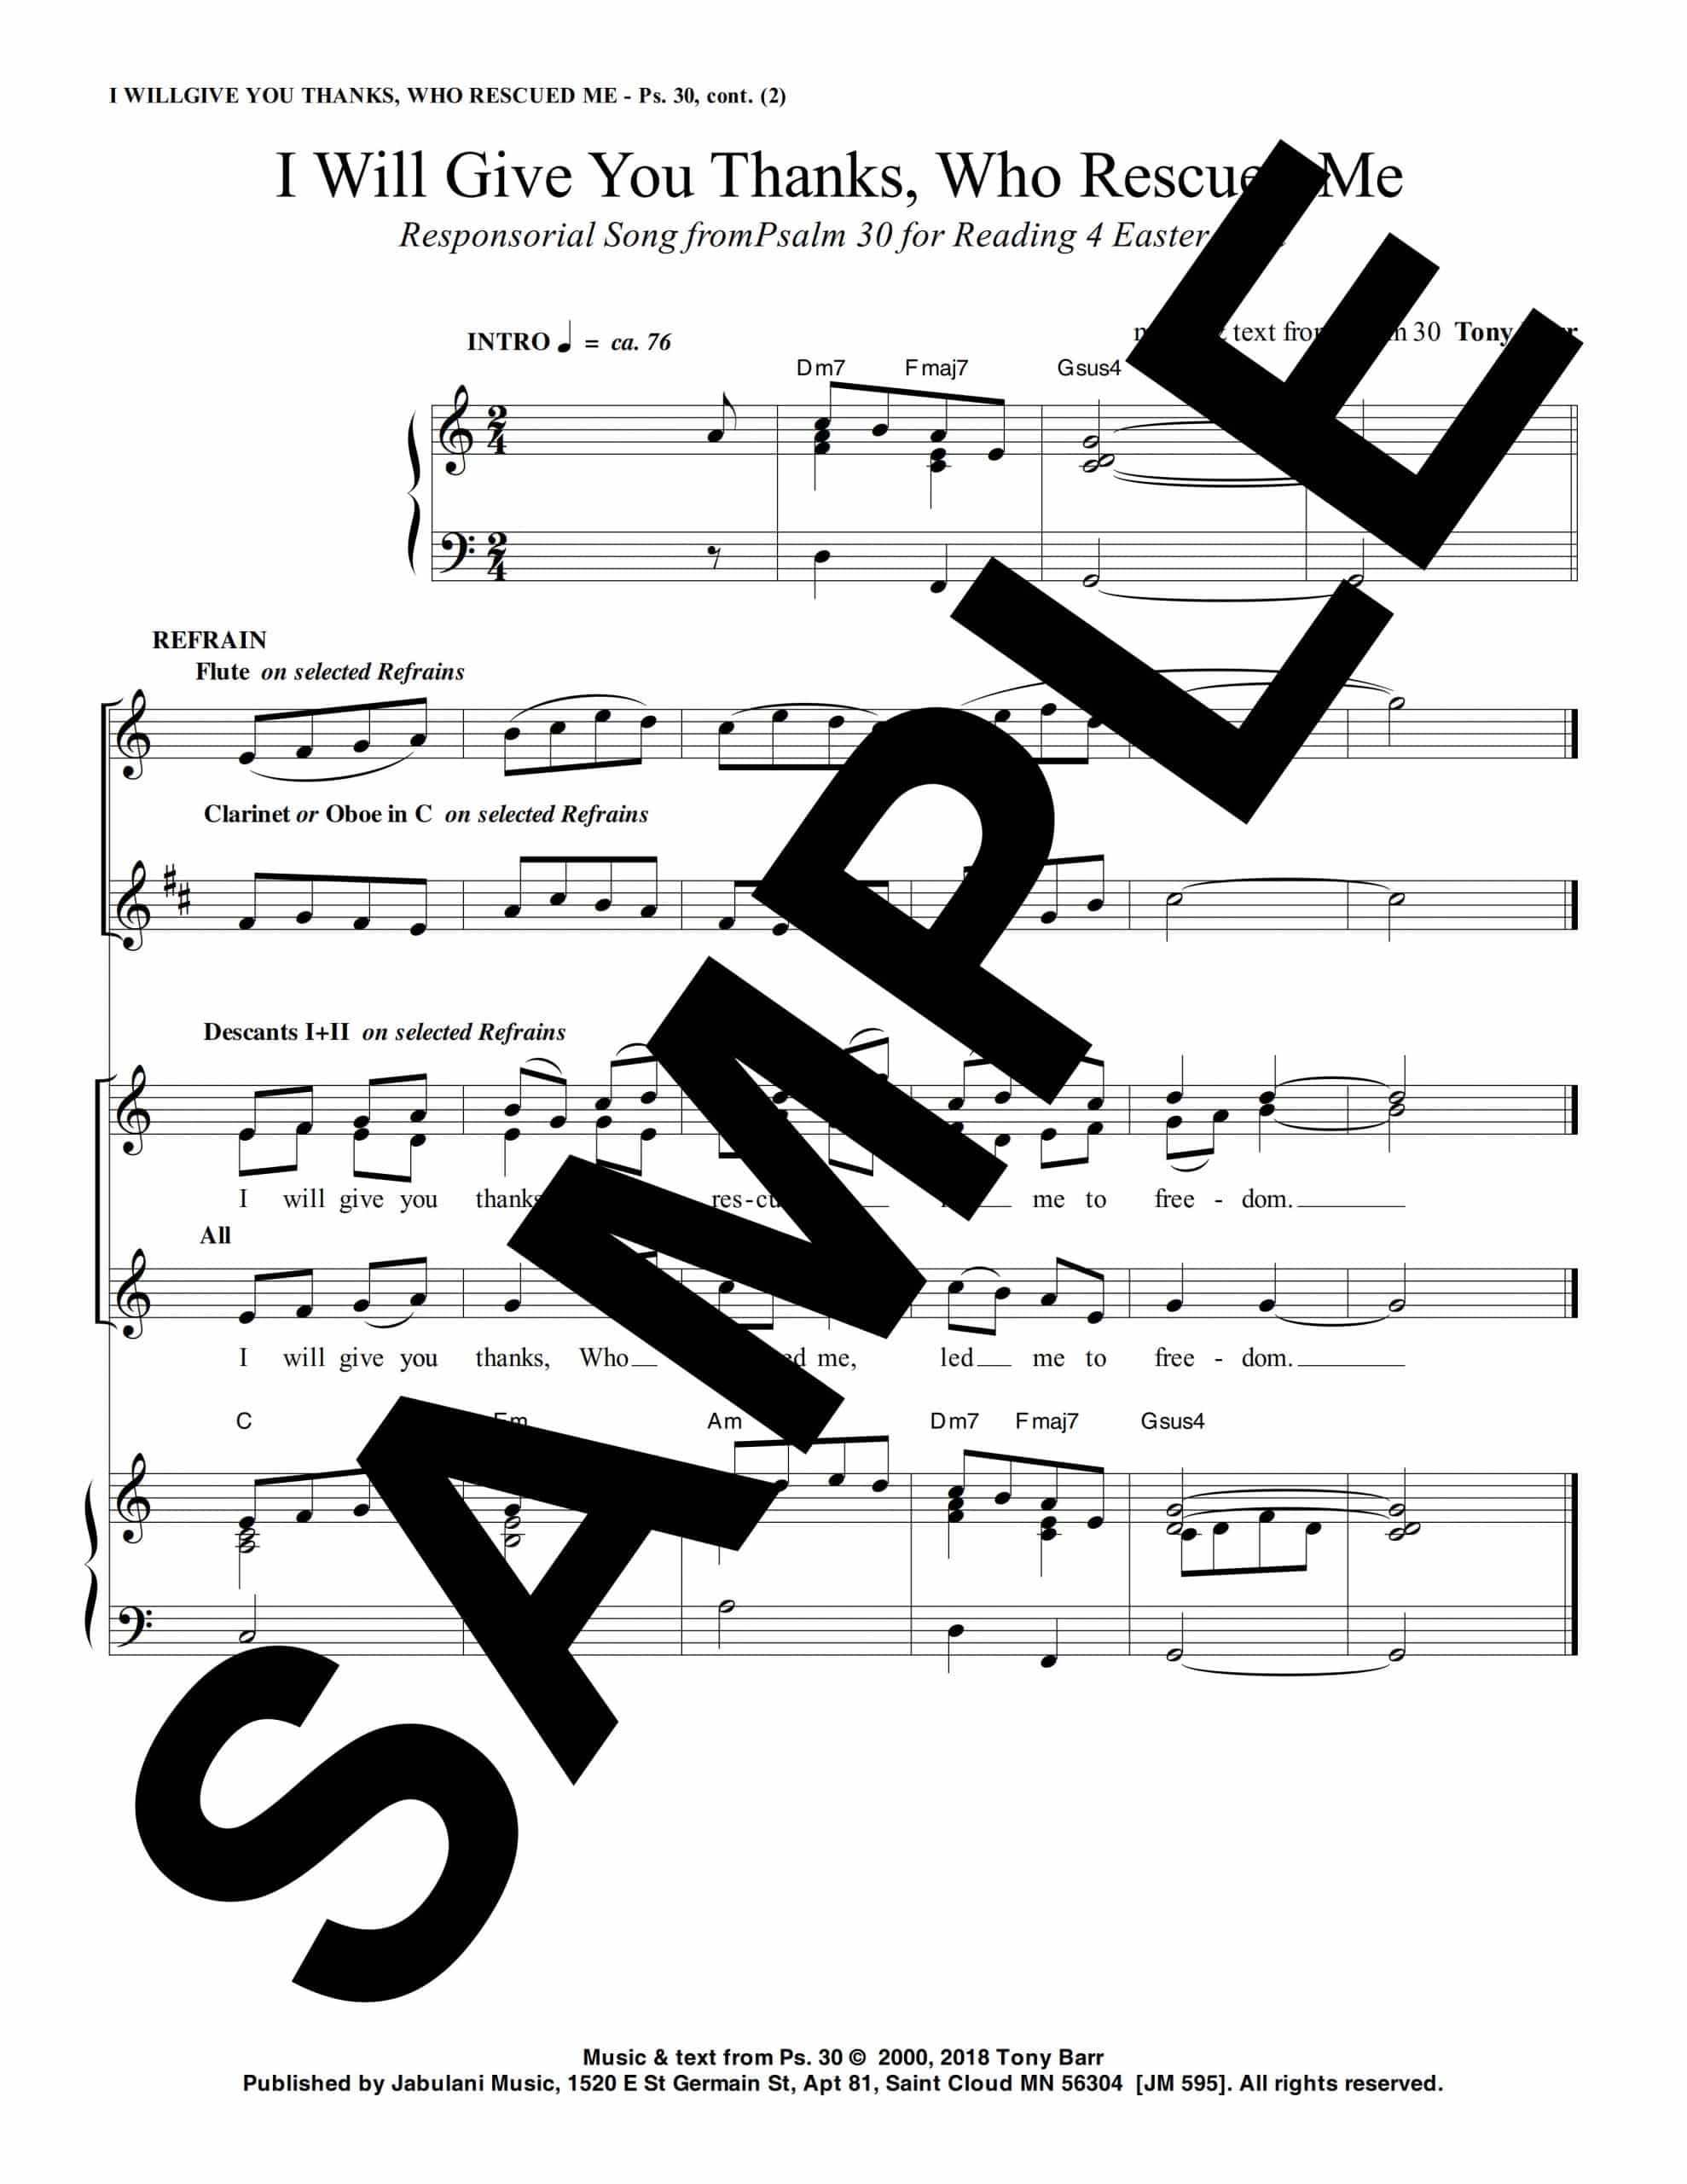 EV 4 Ps 30 I Will Give You Thanks Who Have Rescued Me Sample Musicians Parts 1 scaled